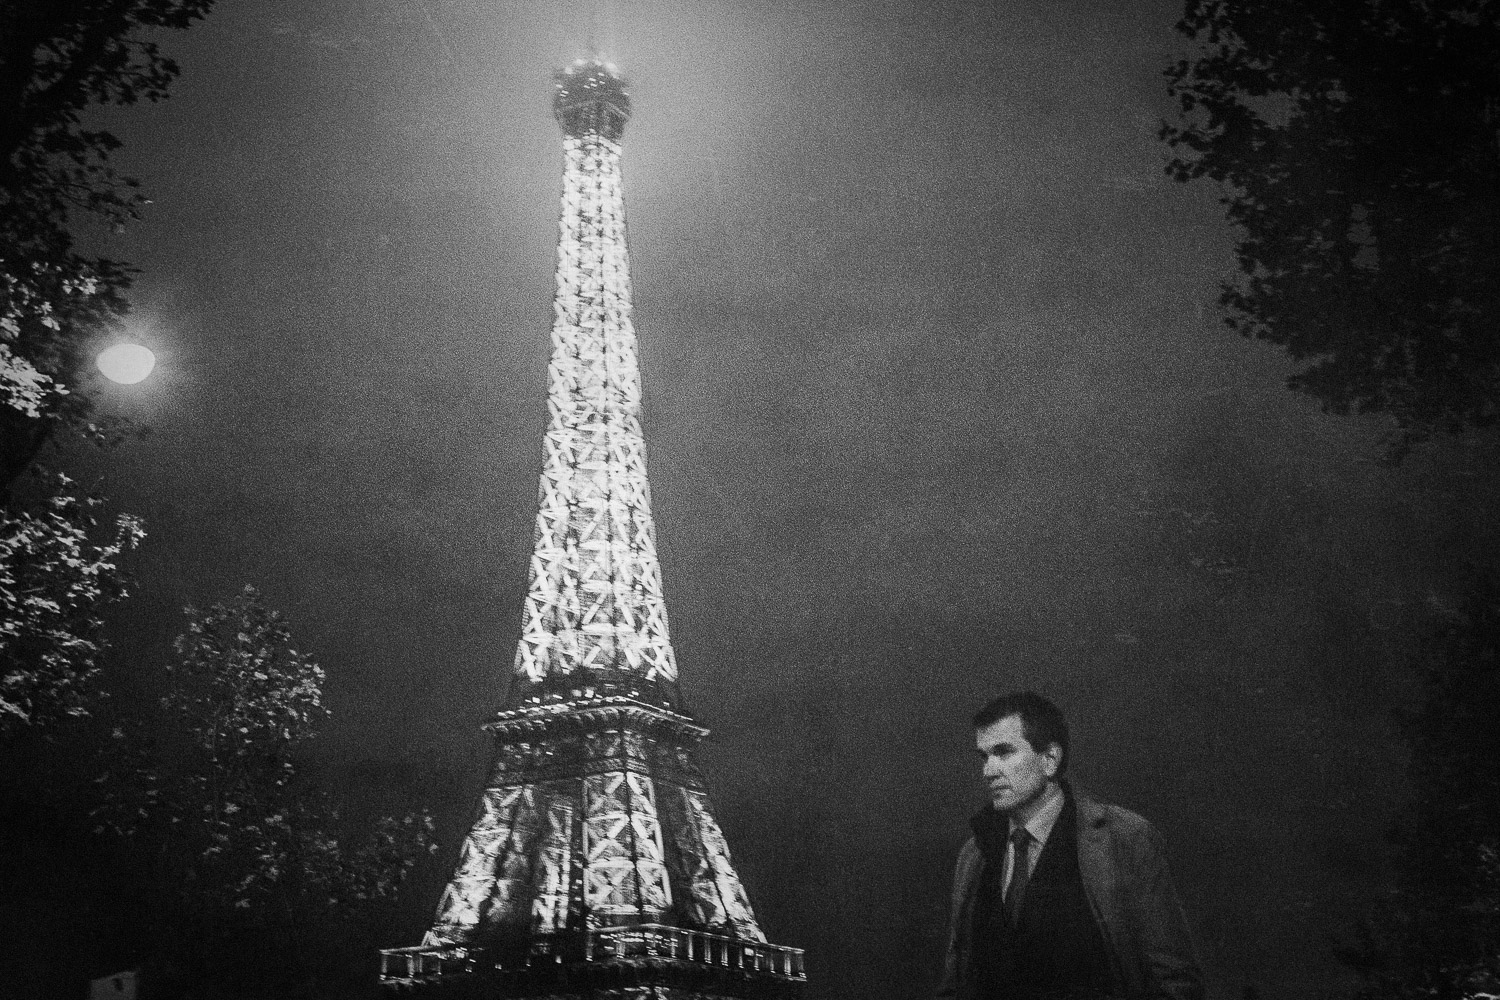 A man passes the illuminated Eiffel Tower at night, Paris, France